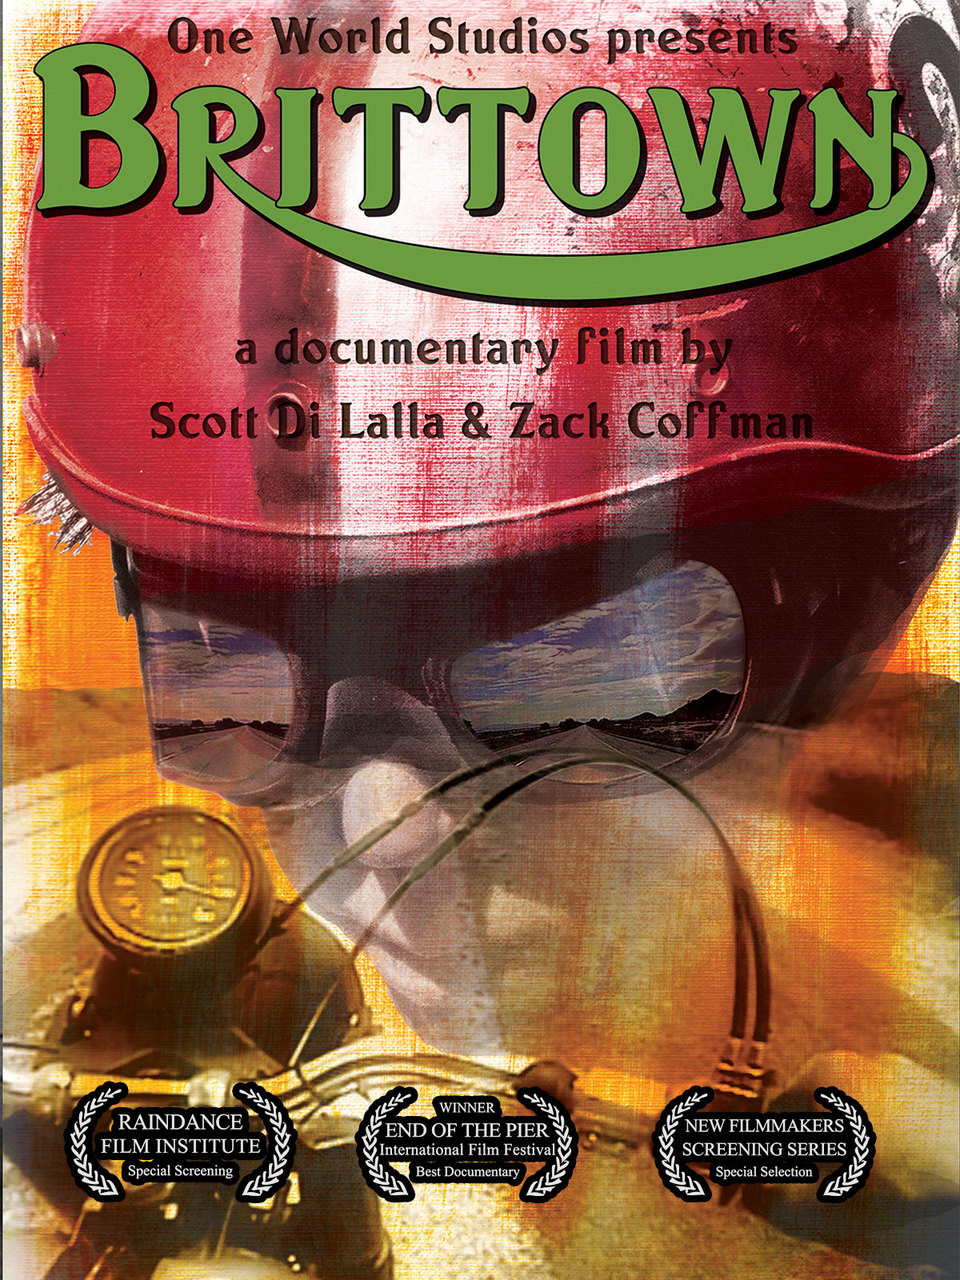 brittown full movie download choppertown motorcycle movie. Black Bedroom Furniture Sets. Home Design Ideas